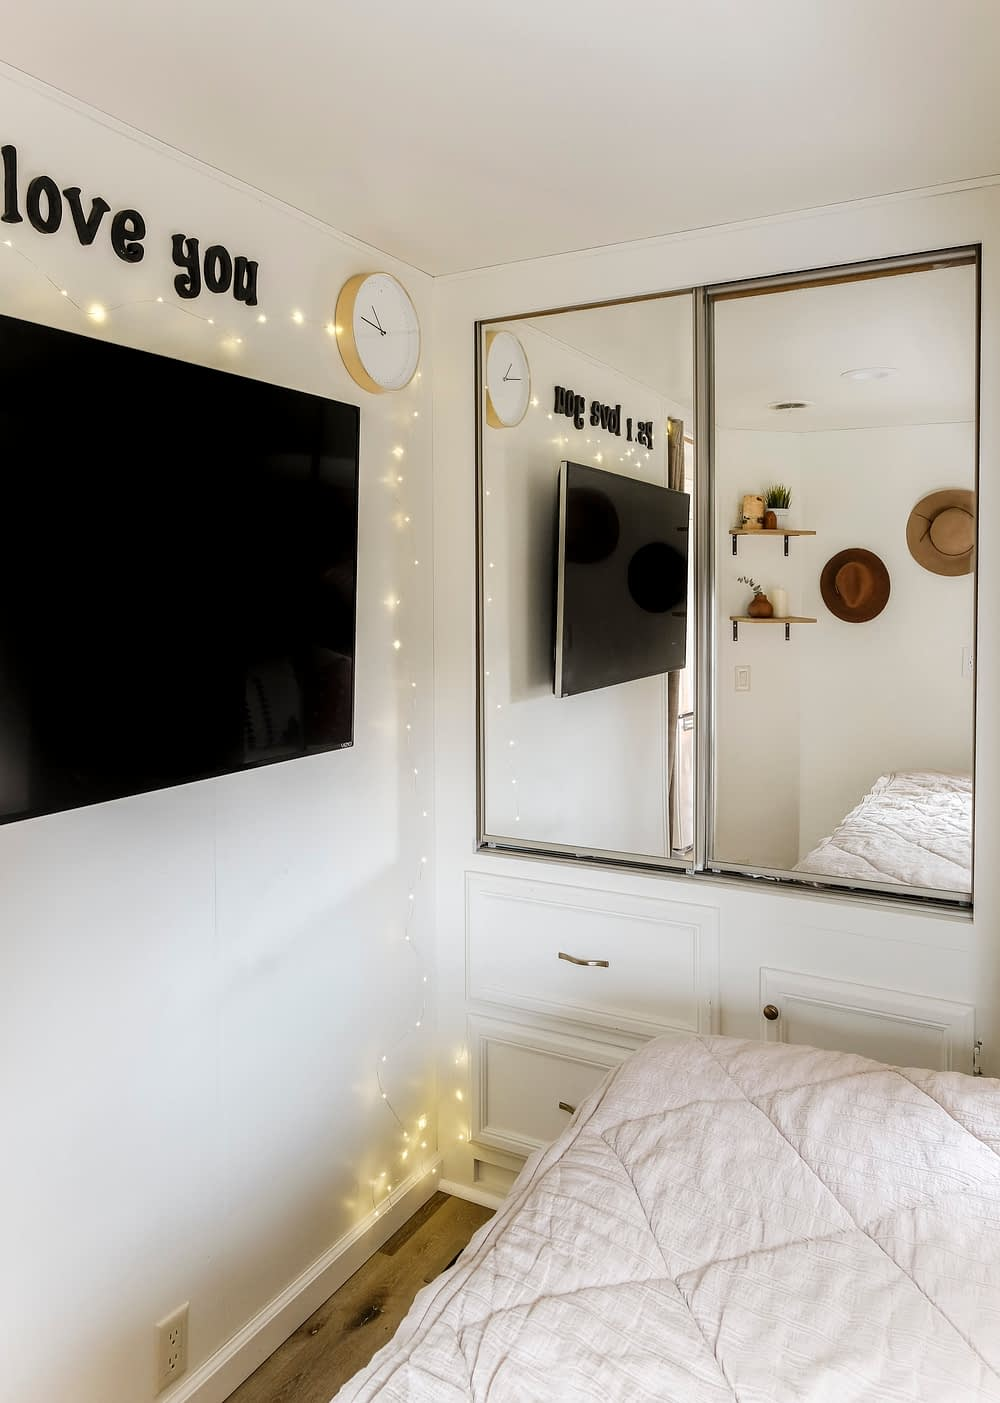 RV bedroom with wall mounted TV and mirrored door closets